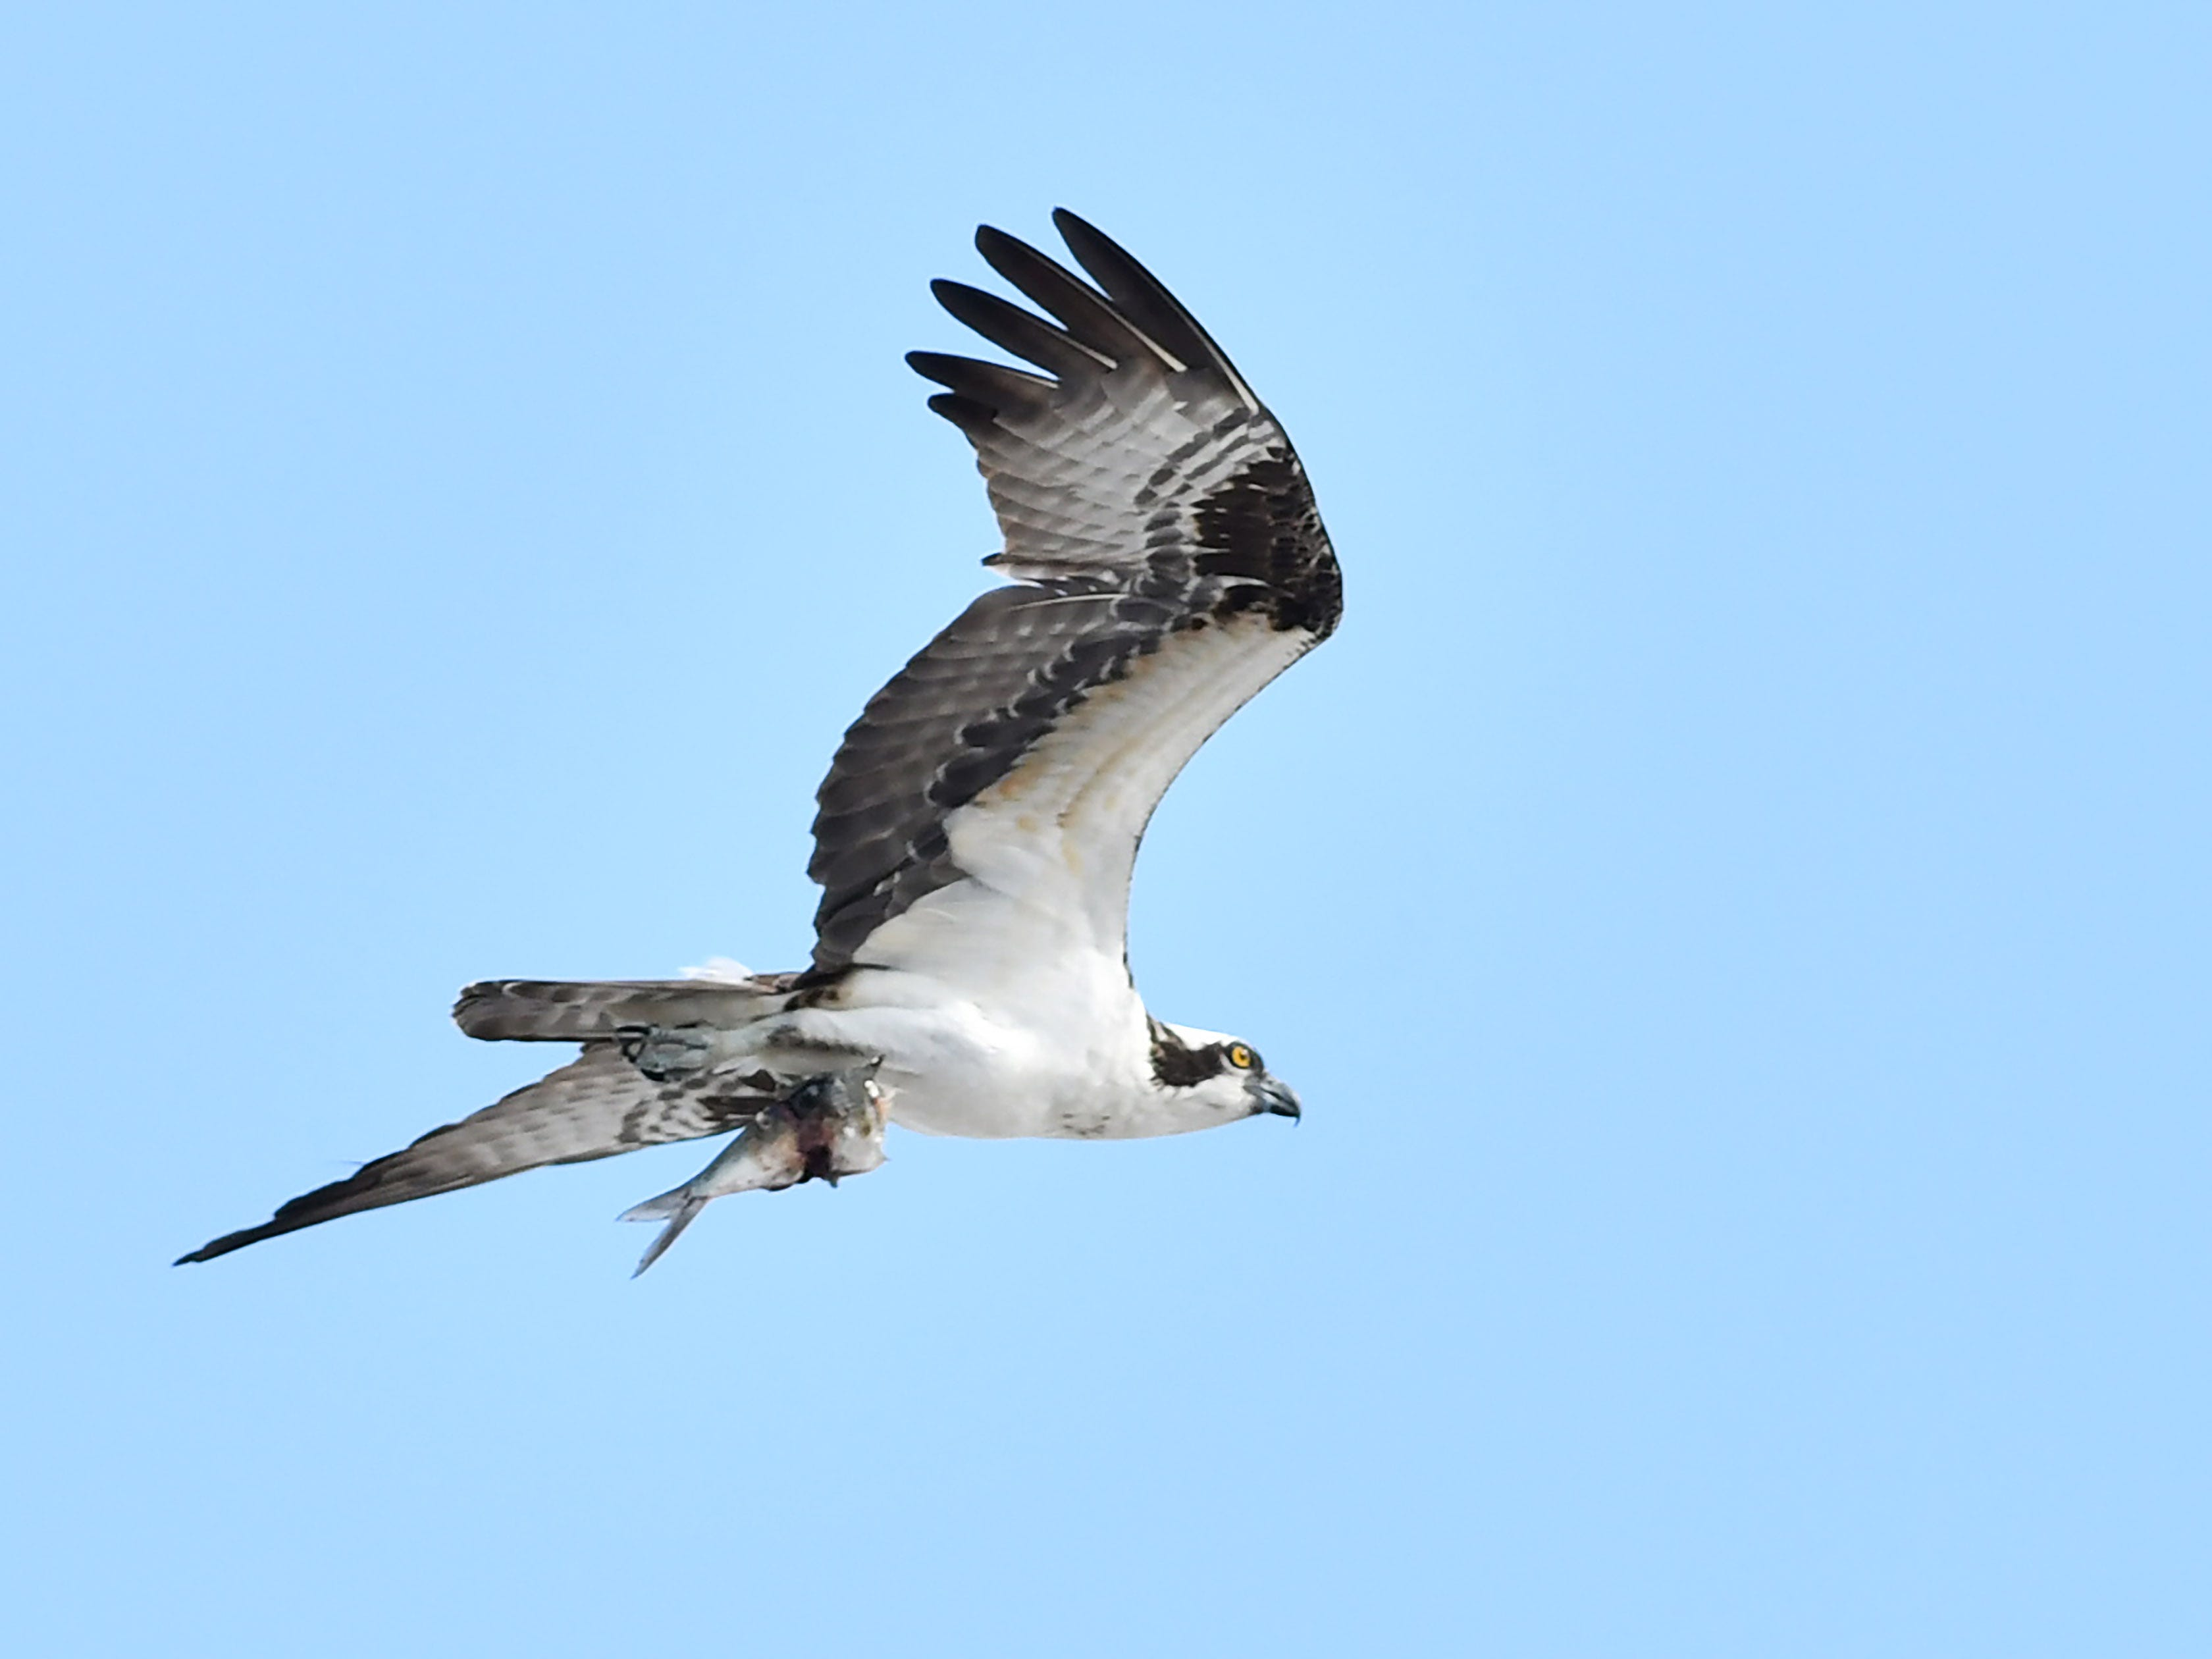 An osprey heads home with a fish dinner flying over the stadium.